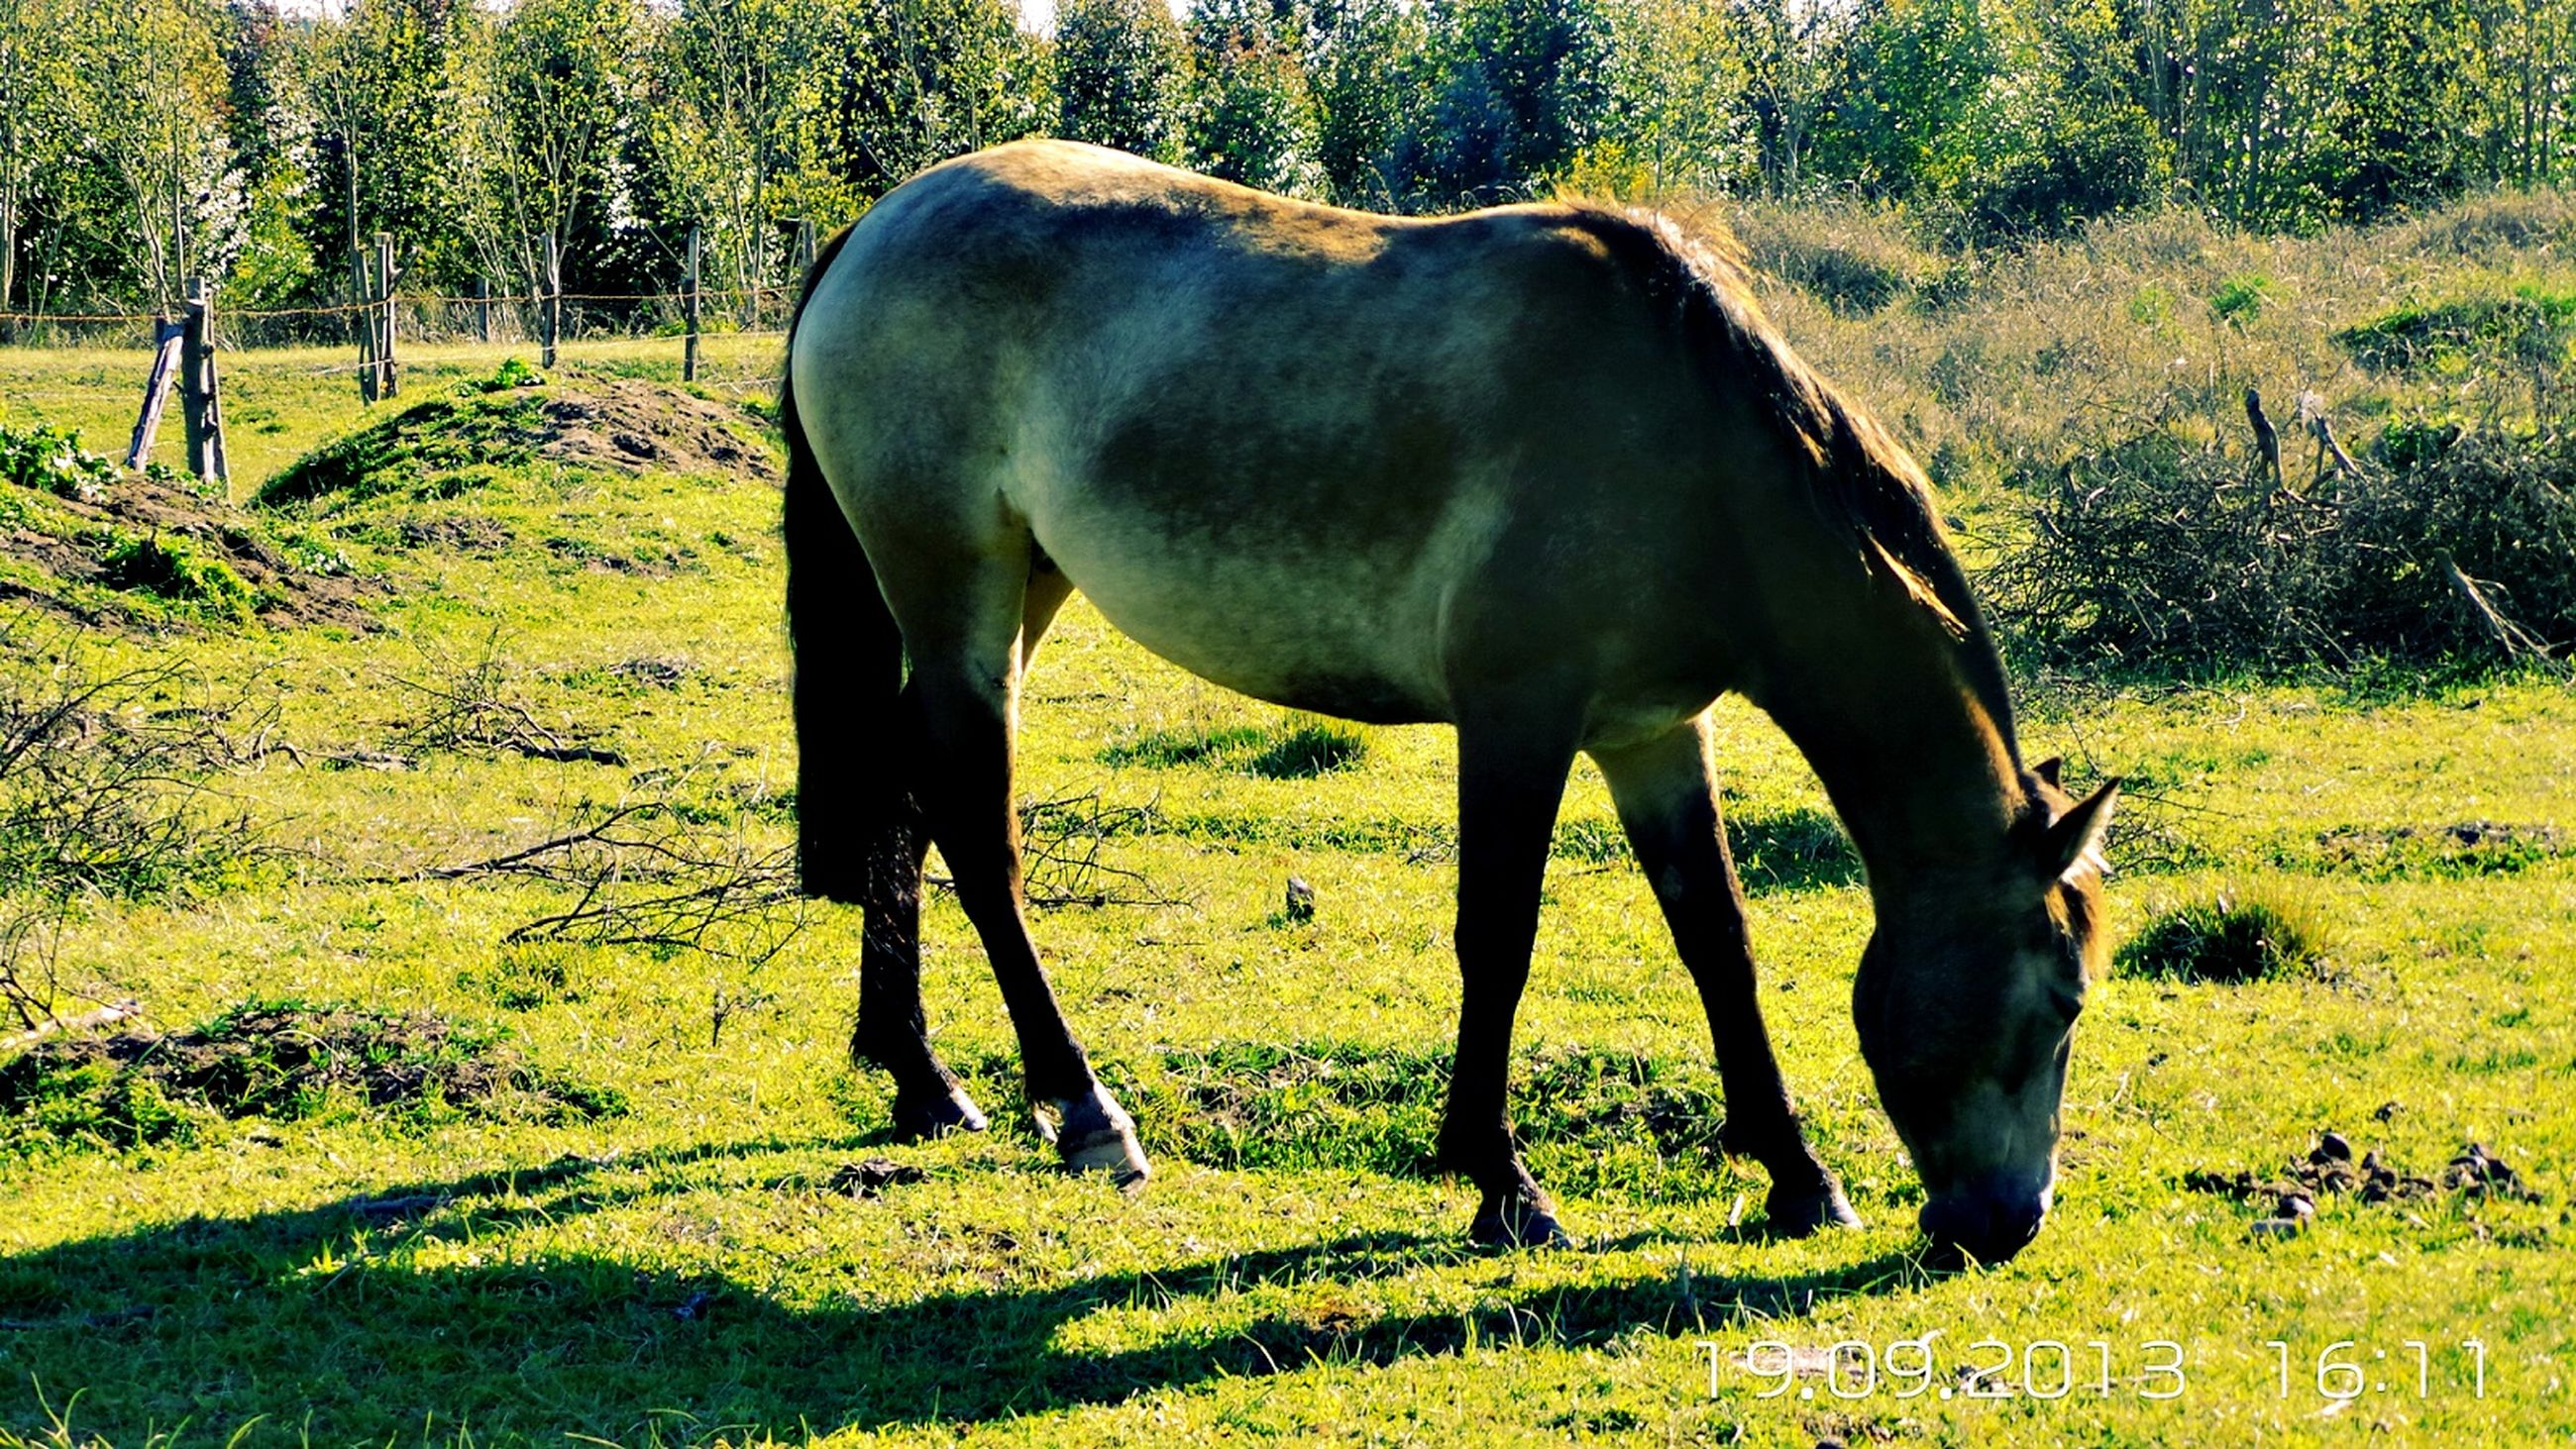 grass, horse, field, domestic animals, animal themes, mammal, standing, full length, grassy, grazing, tree, green color, one animal, livestock, walking, herbivorous, nature, landscape, side view, growth